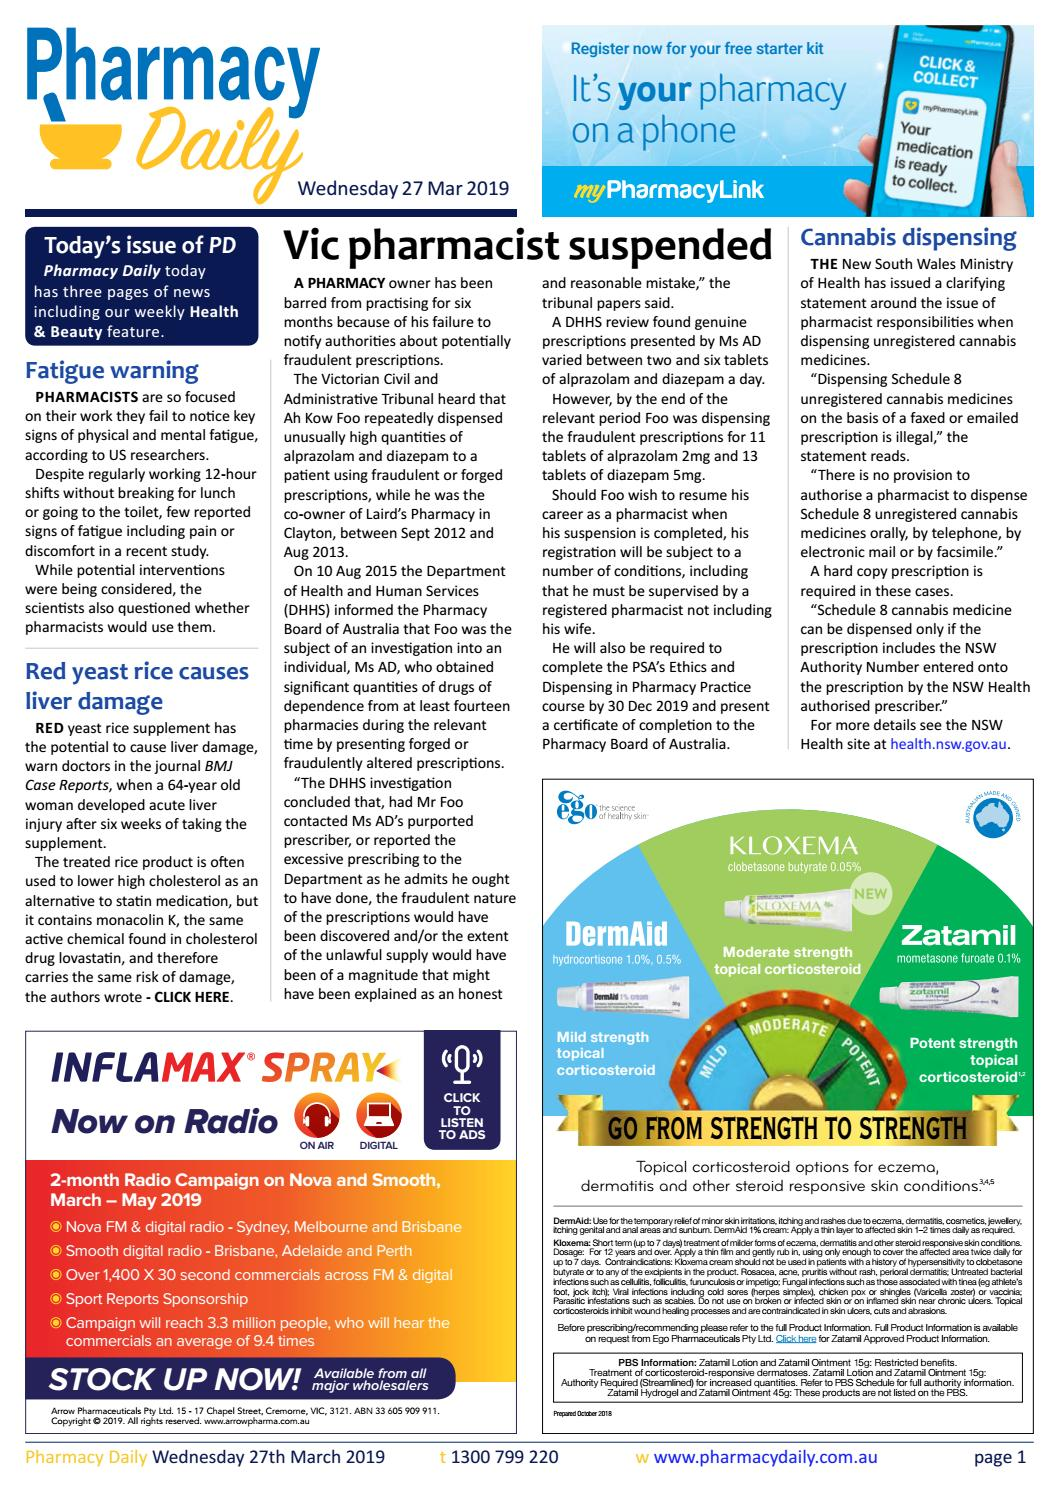 PD for Wed 27 Mar 2019 - Vic pharmacist suspended, Don't